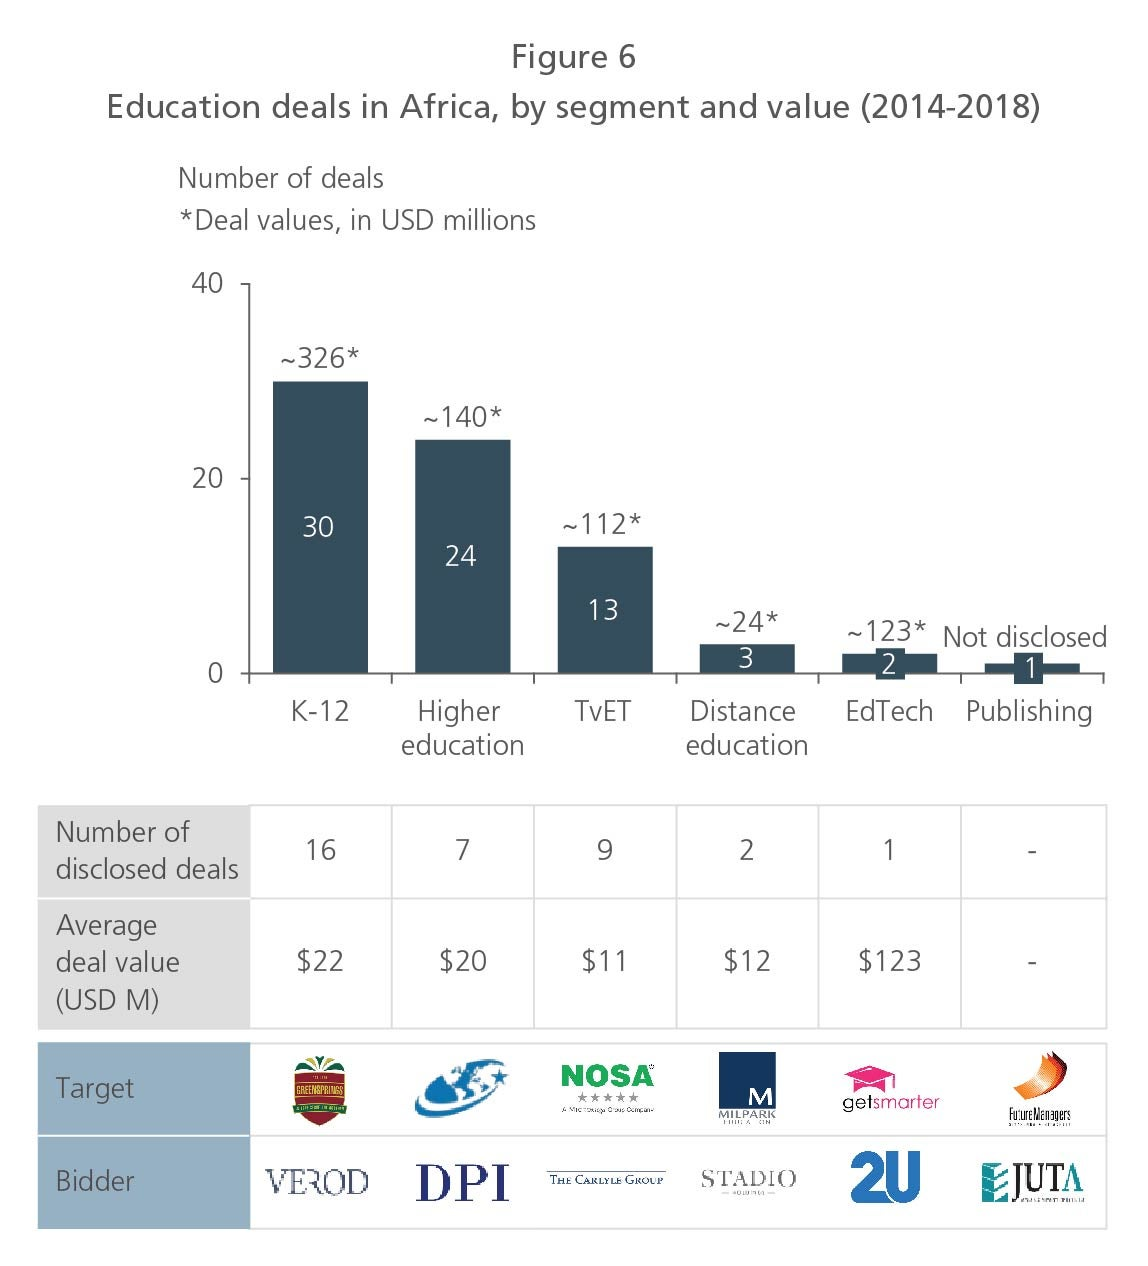 Education Deals in Africa, by segment and value (2014-2018)